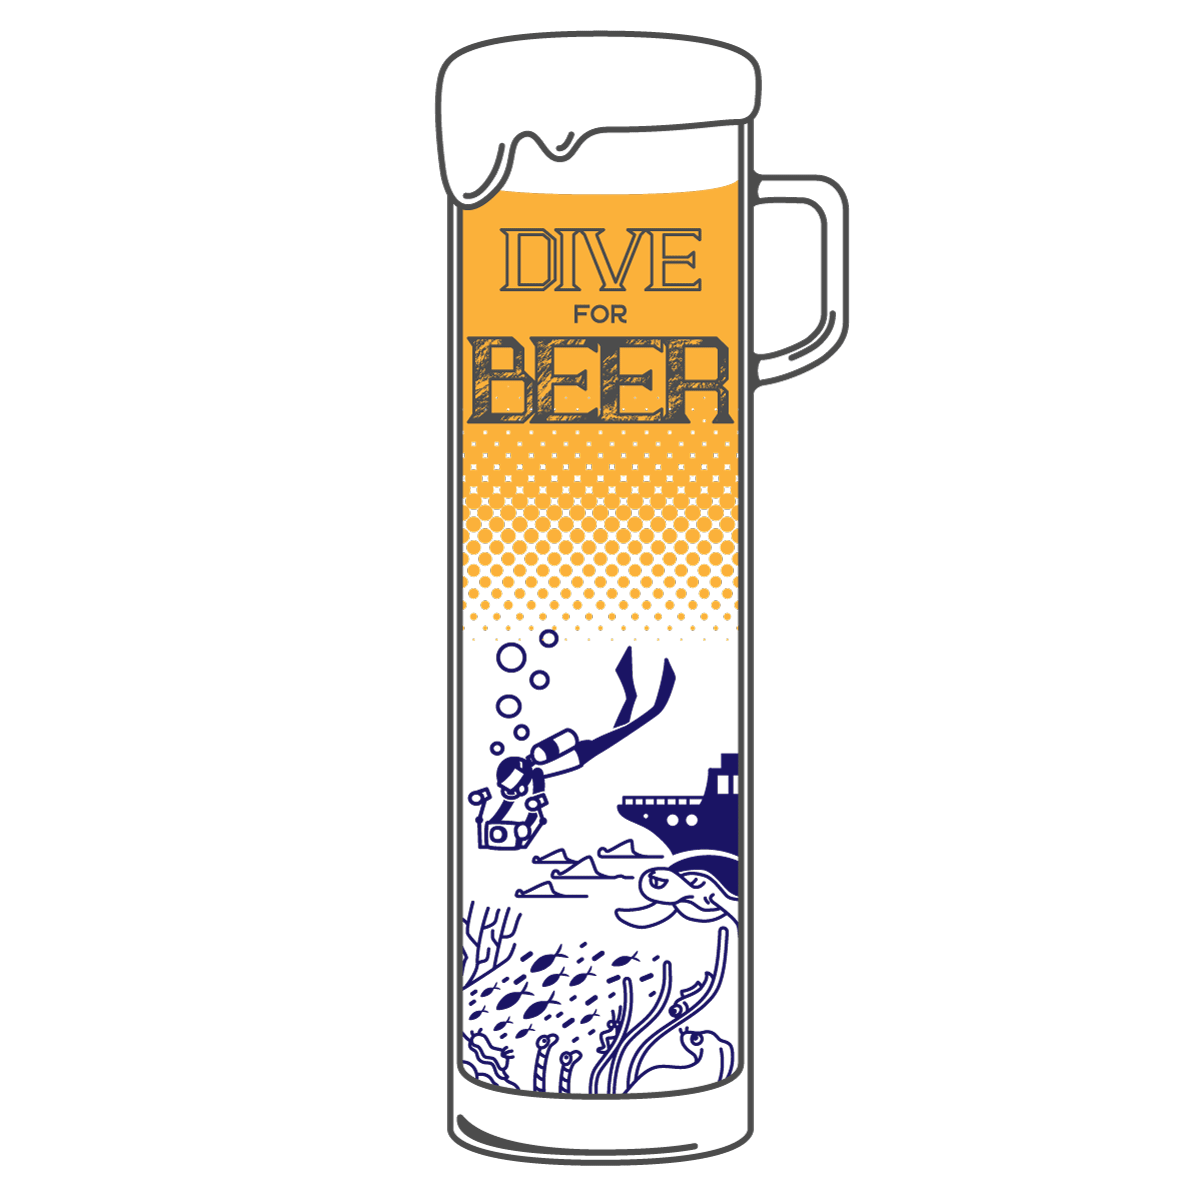 DIVE for BEER